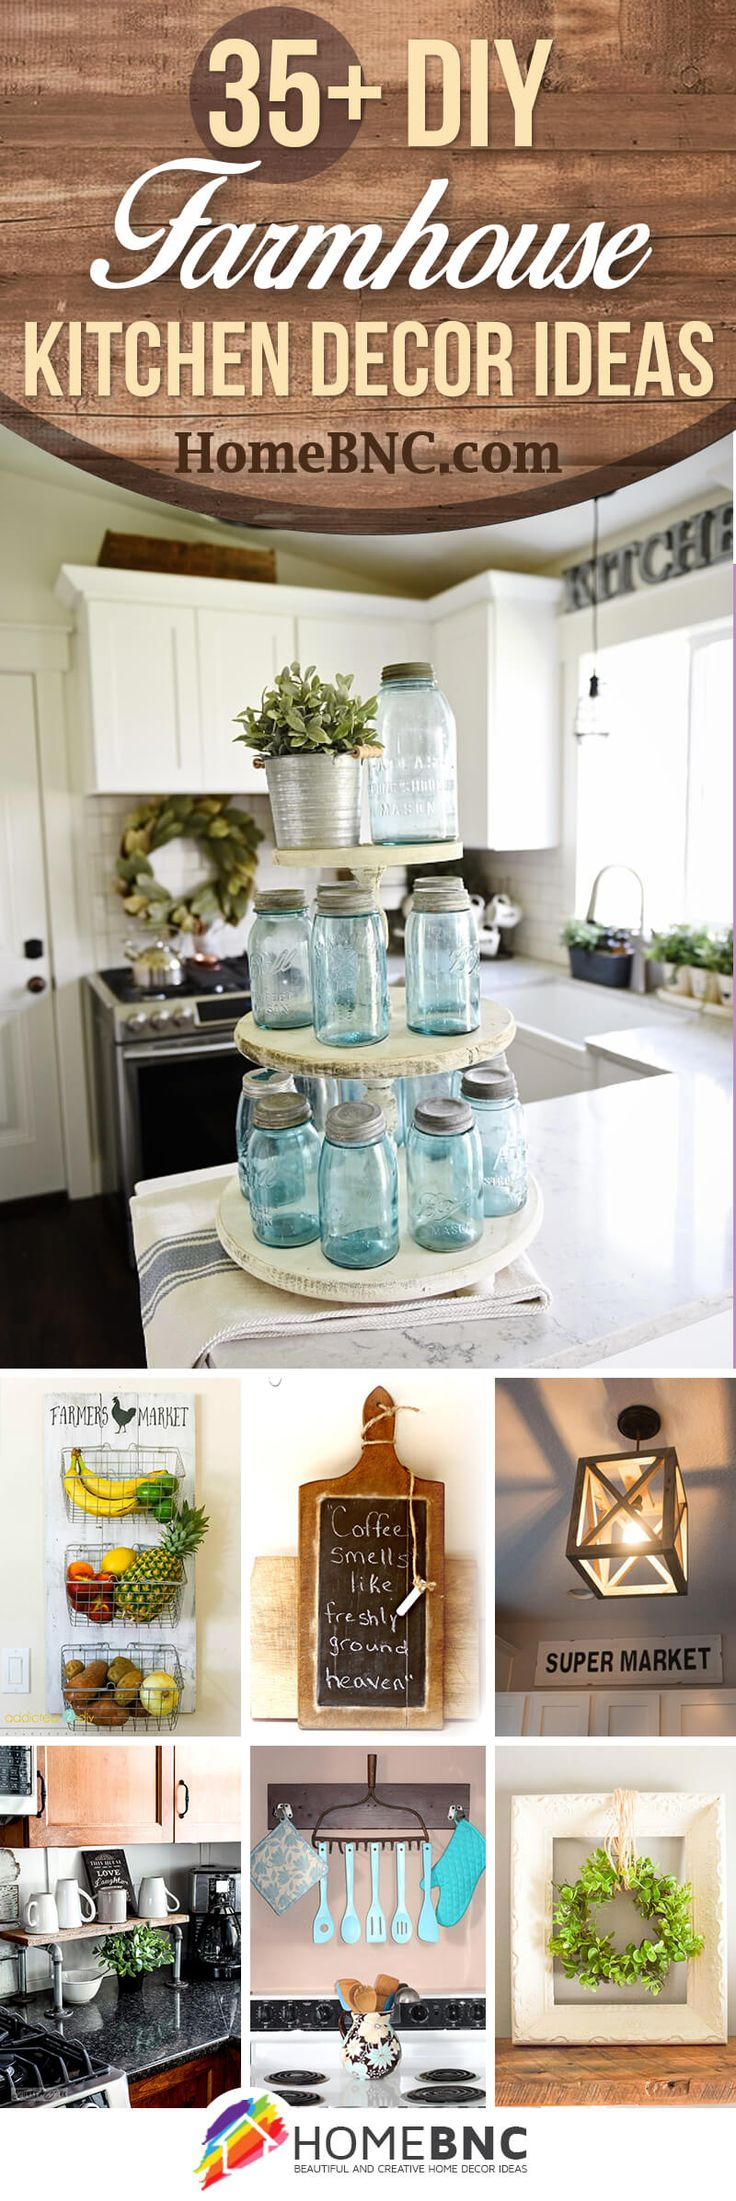 DIY Farmhouse Kitchen Decor Ideas Farmhouse kitchen